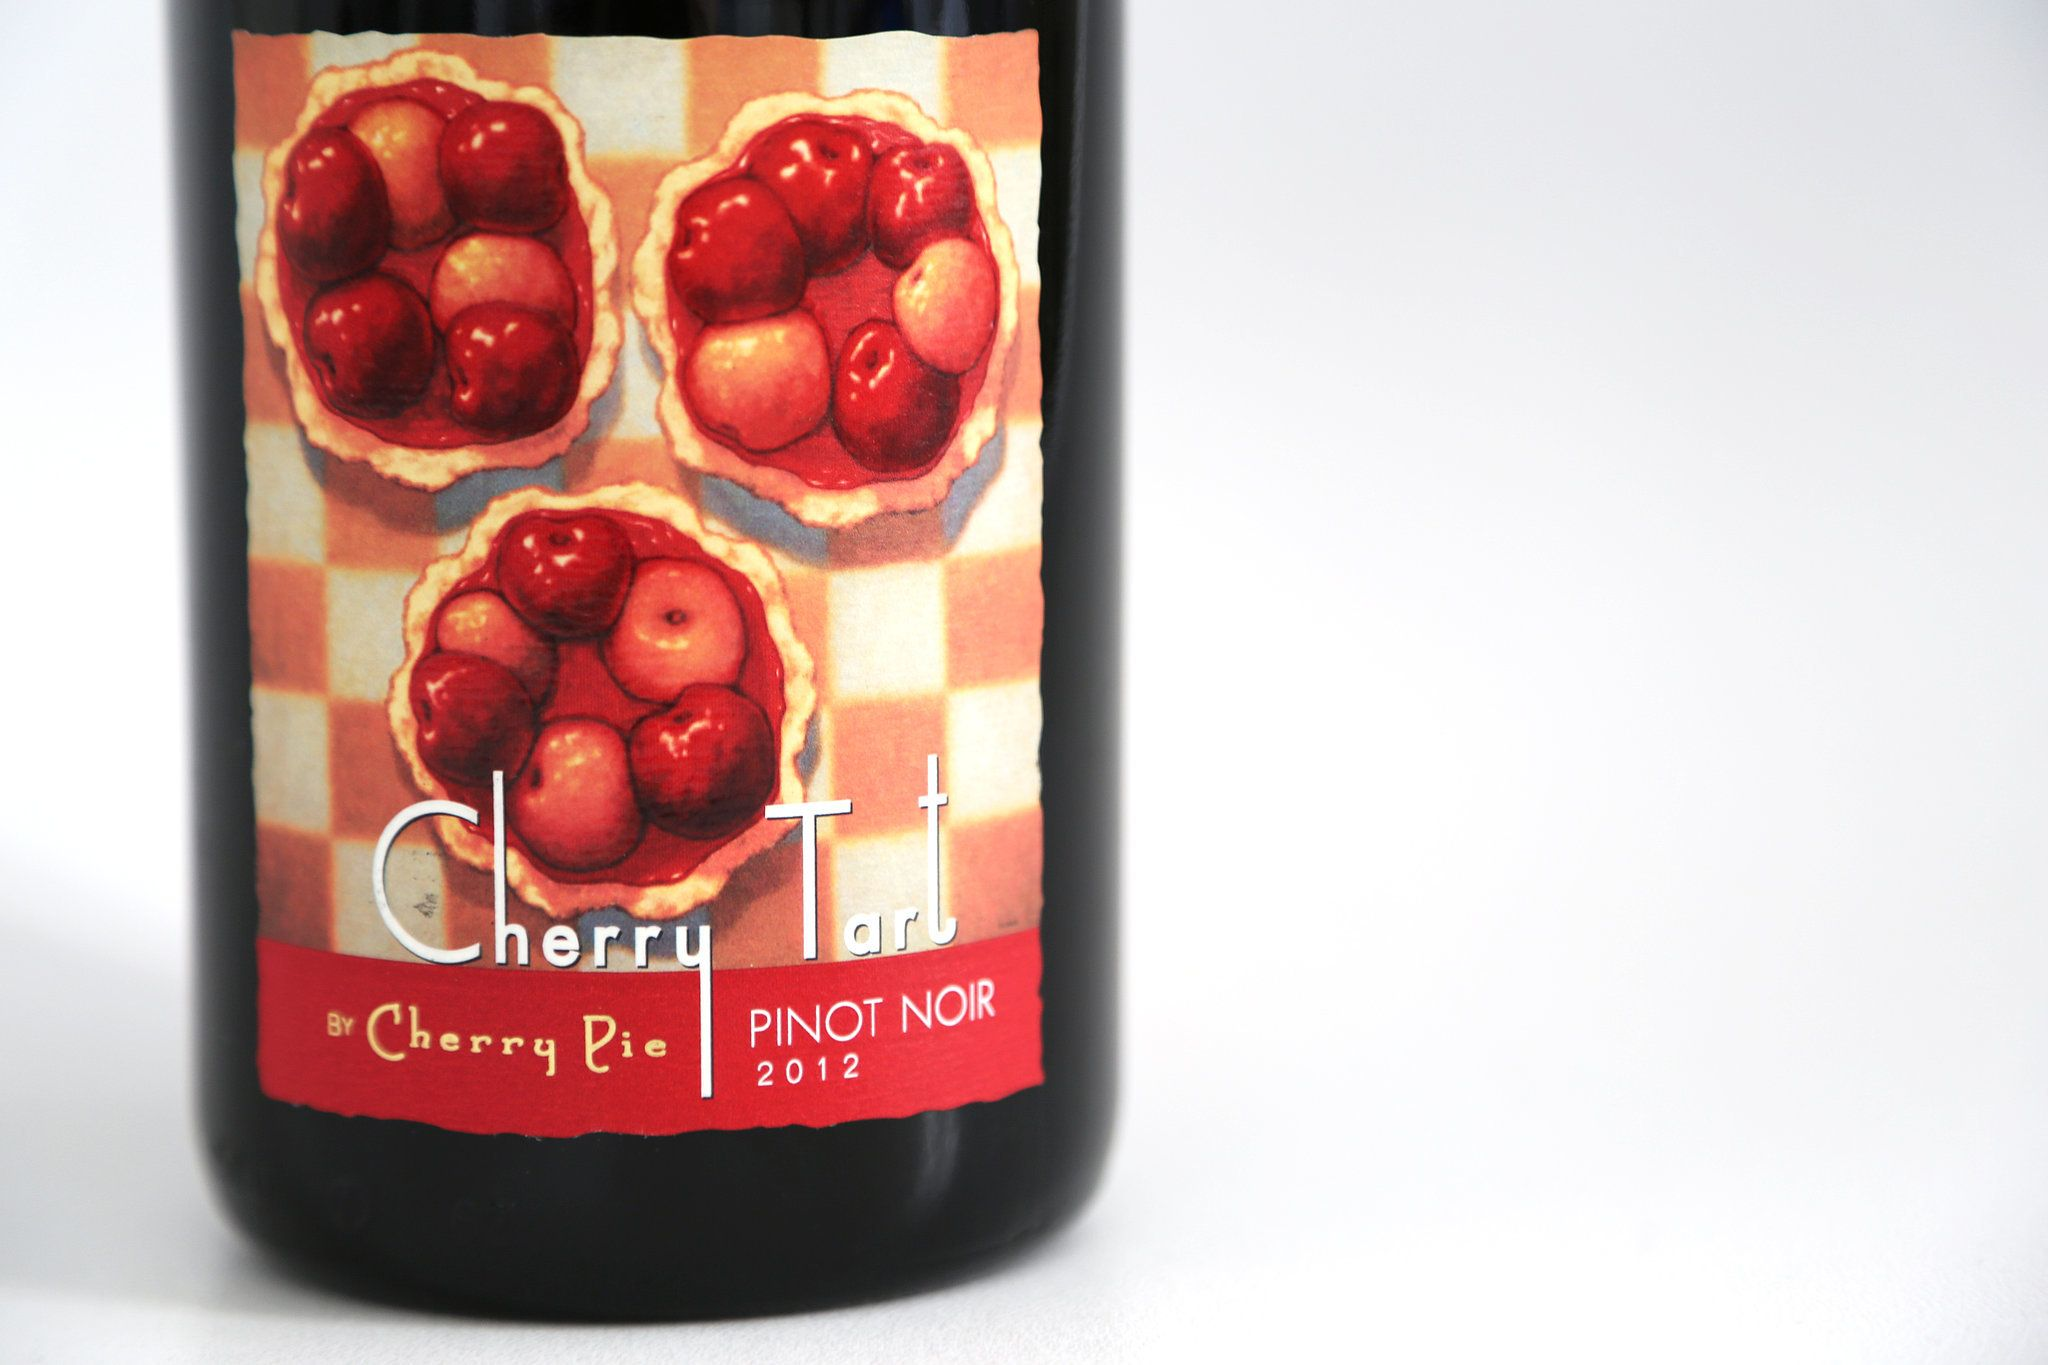 2012 Cherry Tart By Cherry Pie Pinot Noir Cherry Tart Cherry Pie Tart Cherry Pies